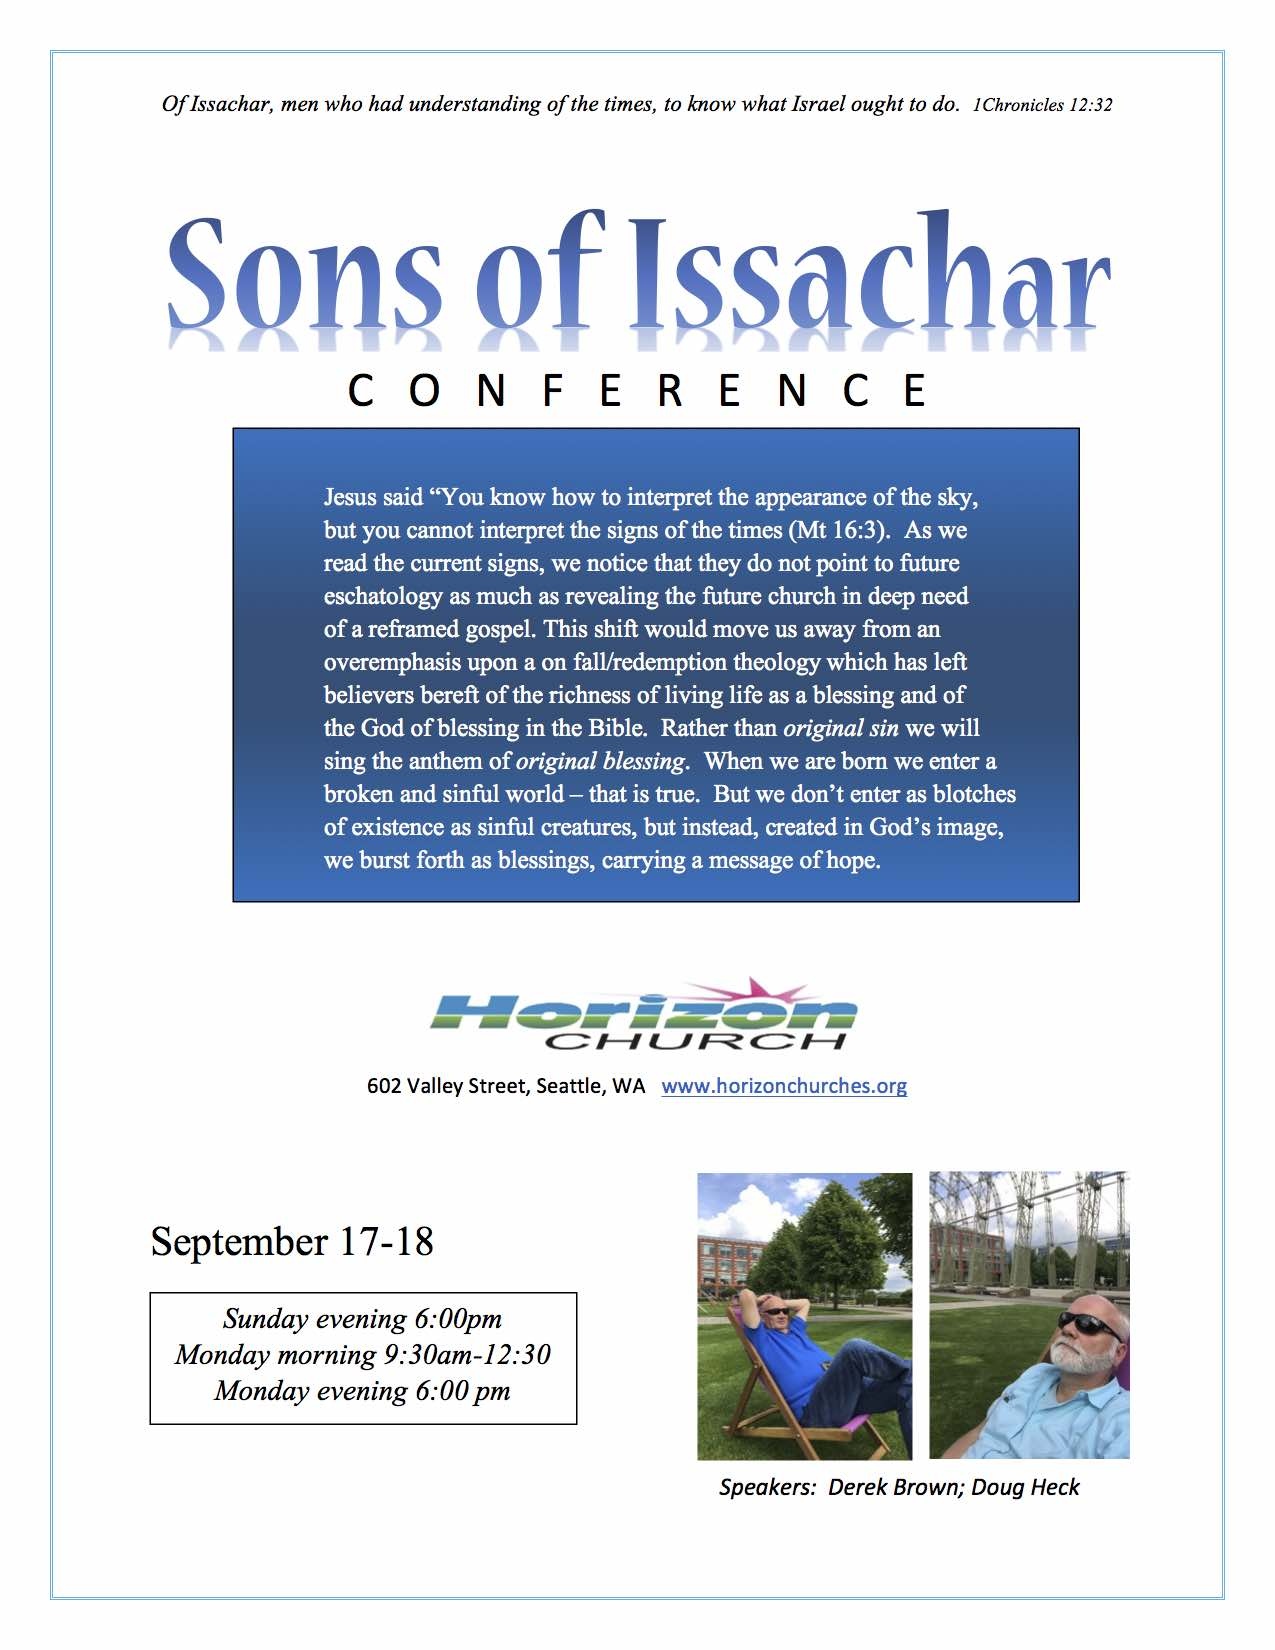 Sons of Issachar Conference sept 2017 flyer.jpg